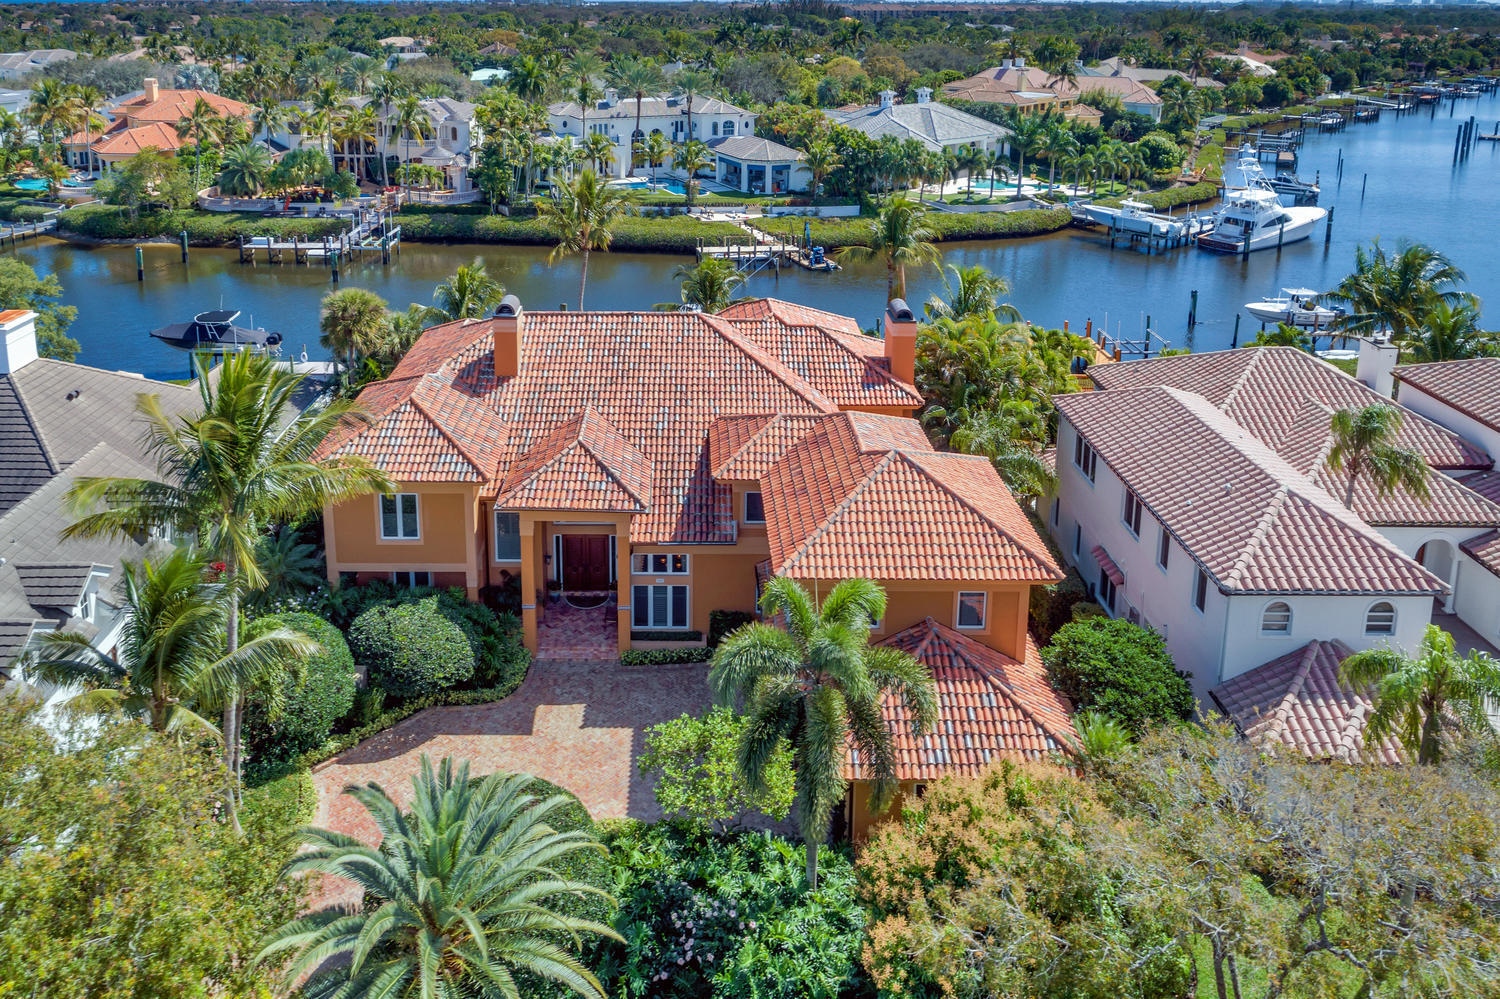 187 Commodore Drive, Jupiter, Florida 33477, 4 Bedrooms Bedrooms, ,4.1 BathroomsBathrooms,A,Single family,Commodore,RX-10507246